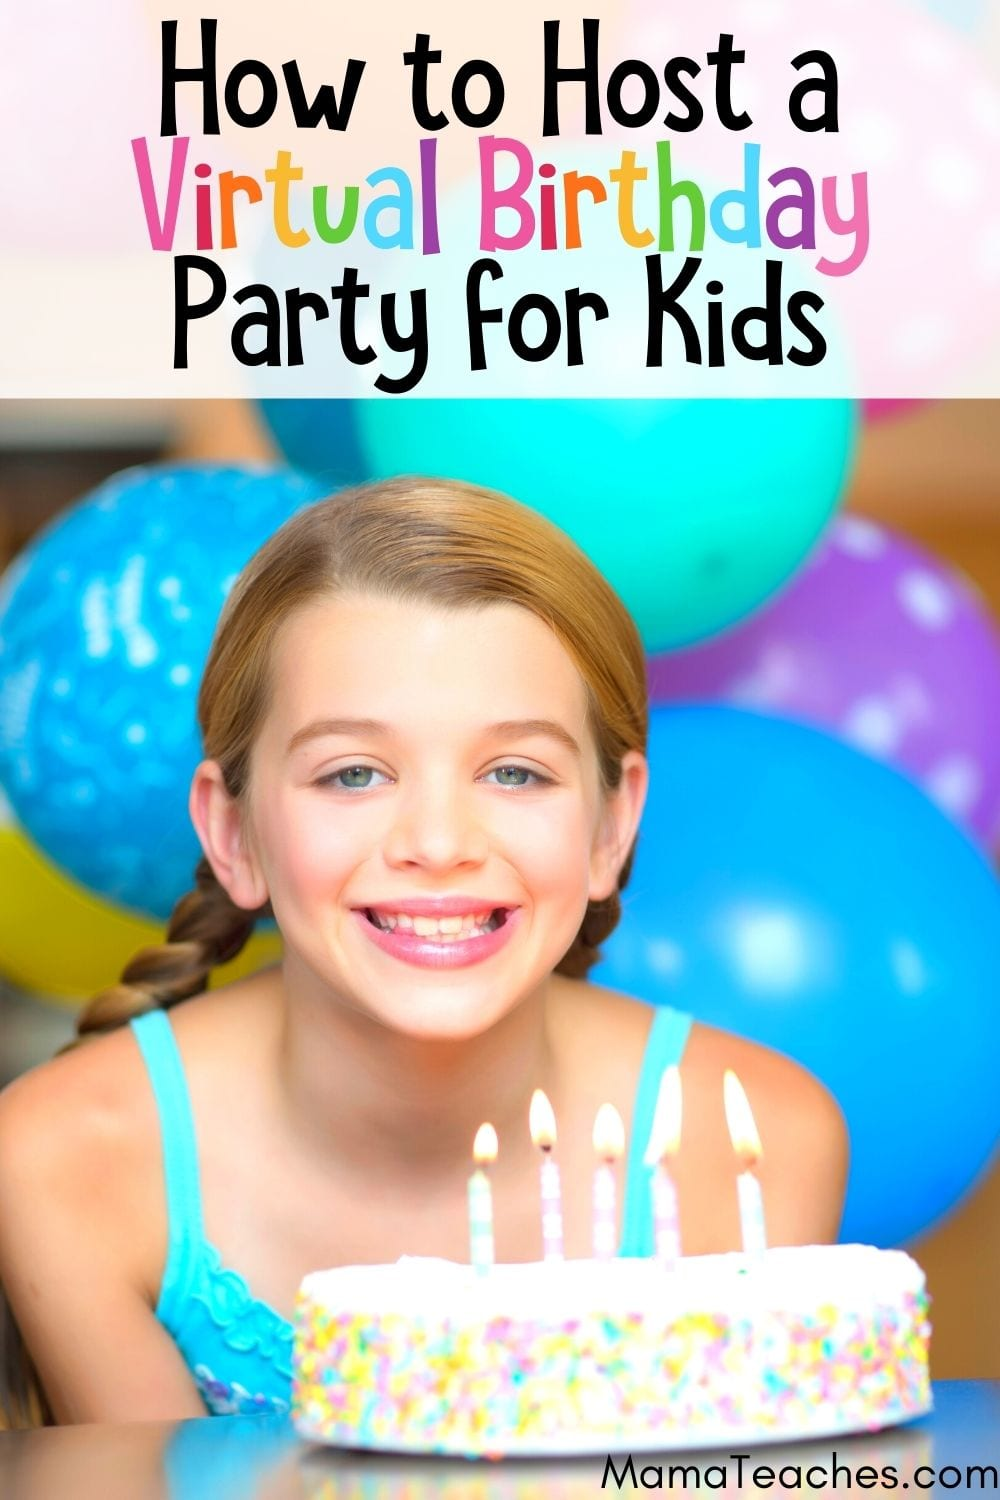 How to Host a Virtual Birthday Party for Kids